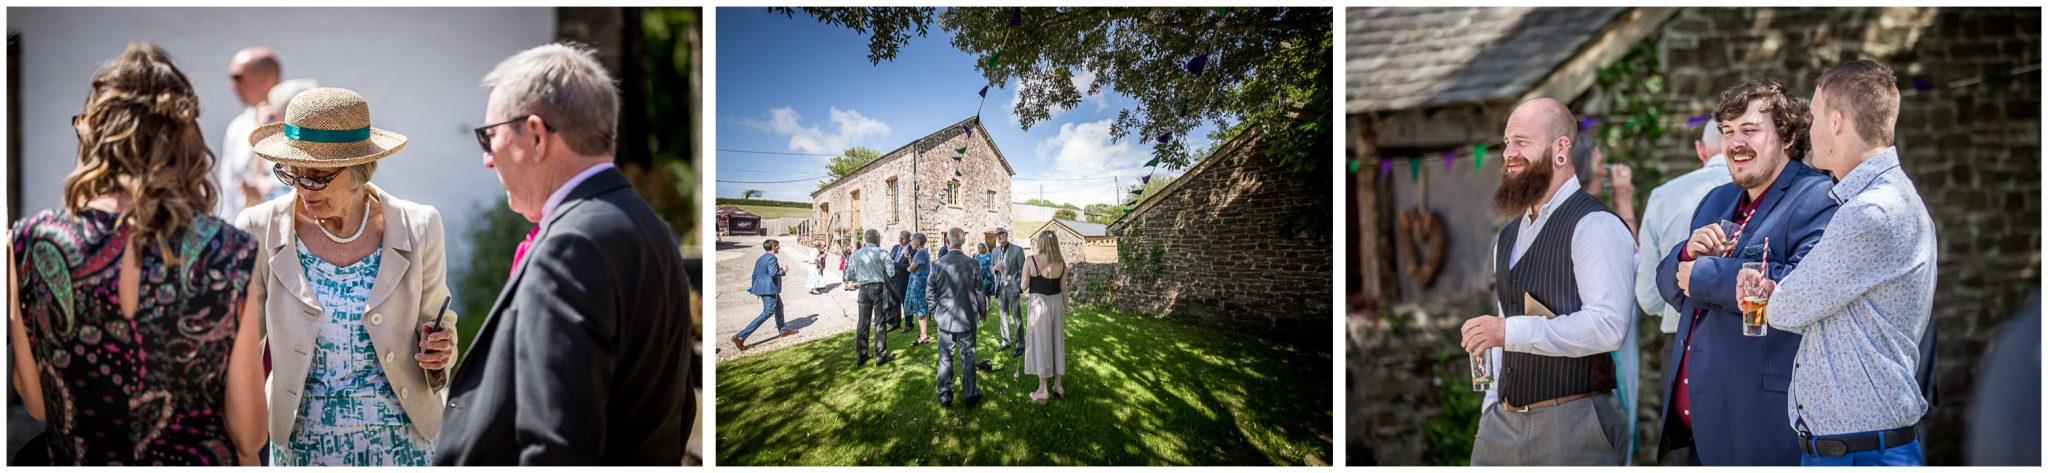 Candid photos of guests in grounds of wedding venue in Summer sunshine